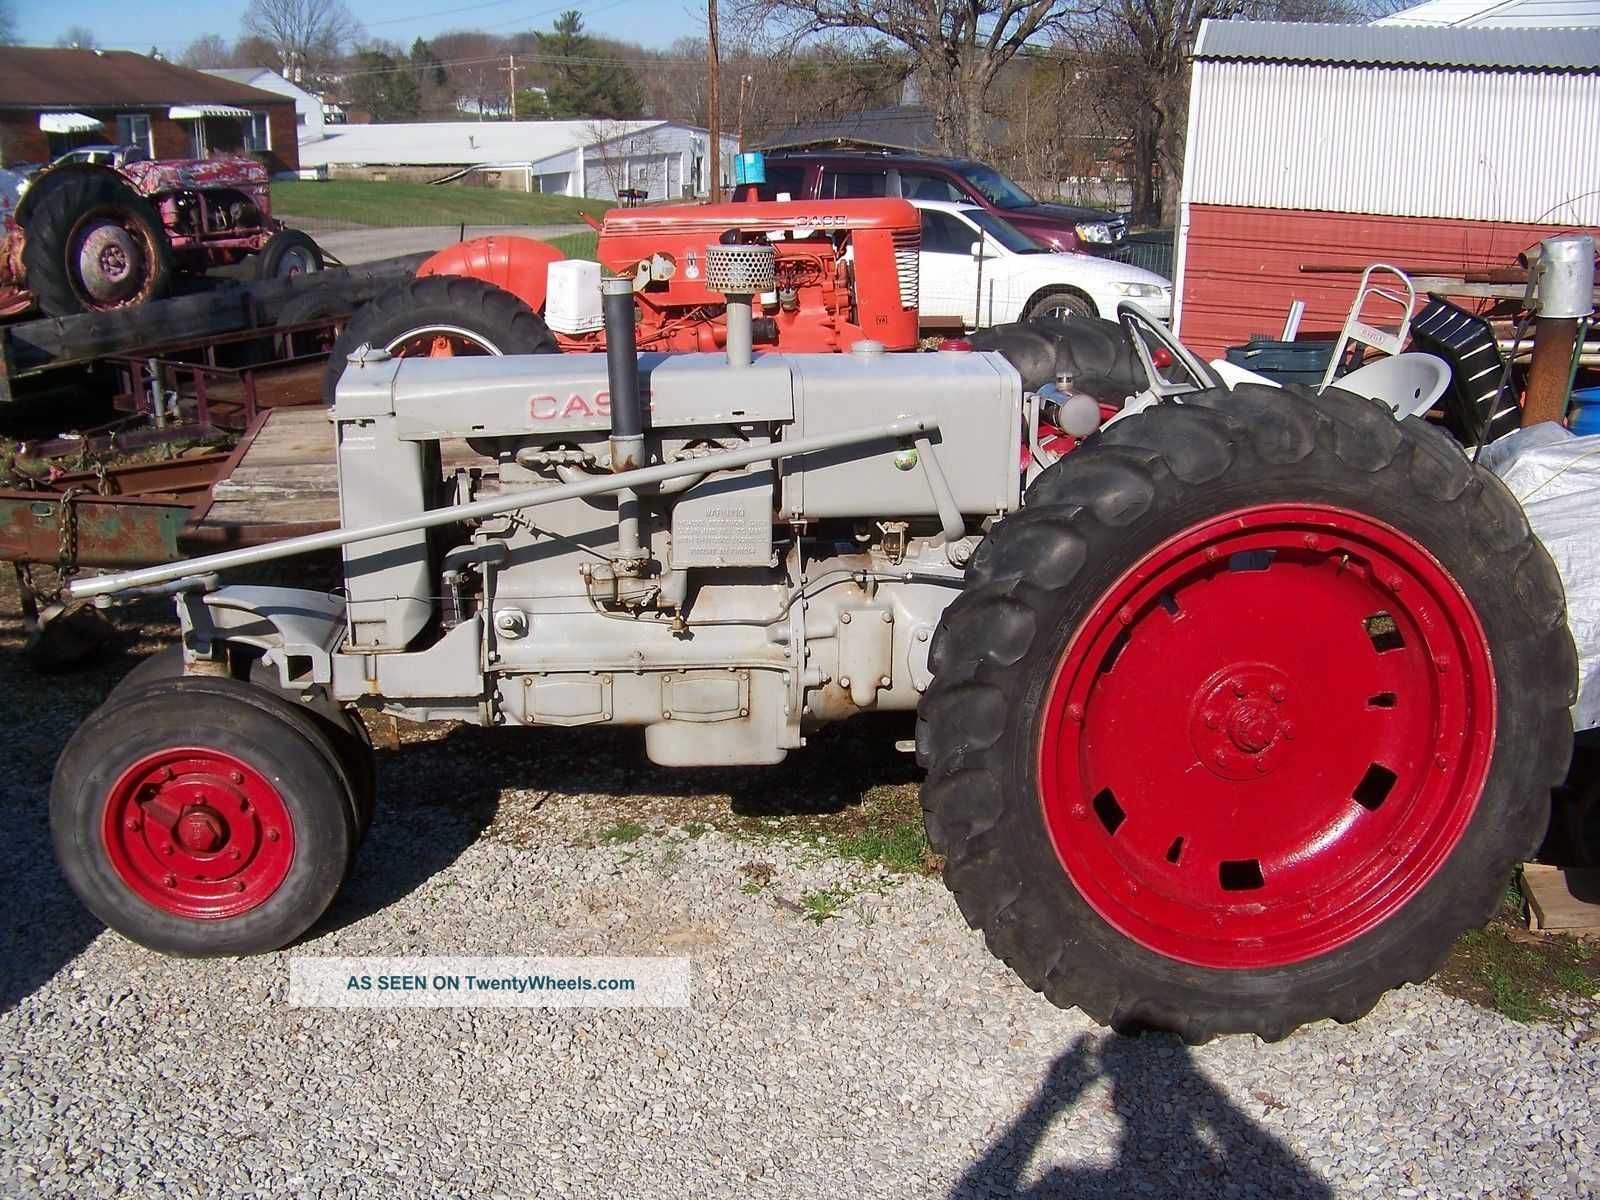 Case Gas Tractor : Case cc farm tractor gas engine pulling plowing